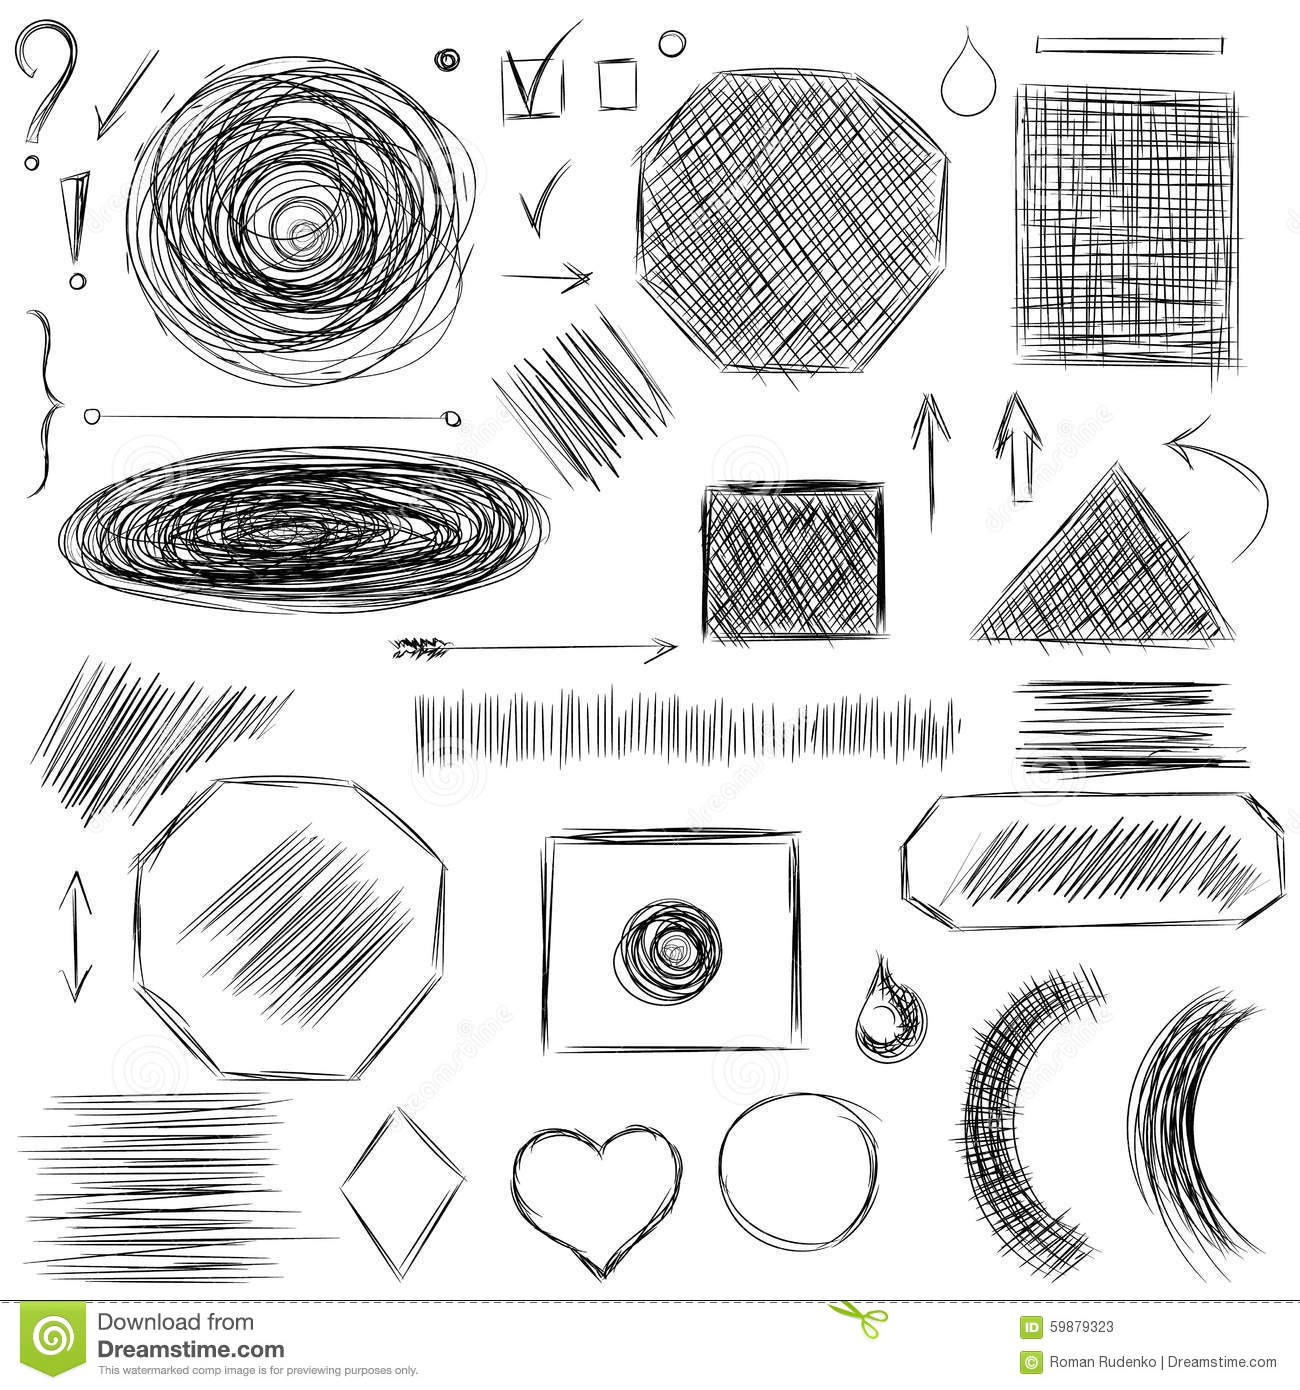 Drawing Lines Between Html Elements : Pencil sketches hand drawn scribble shapes a set of